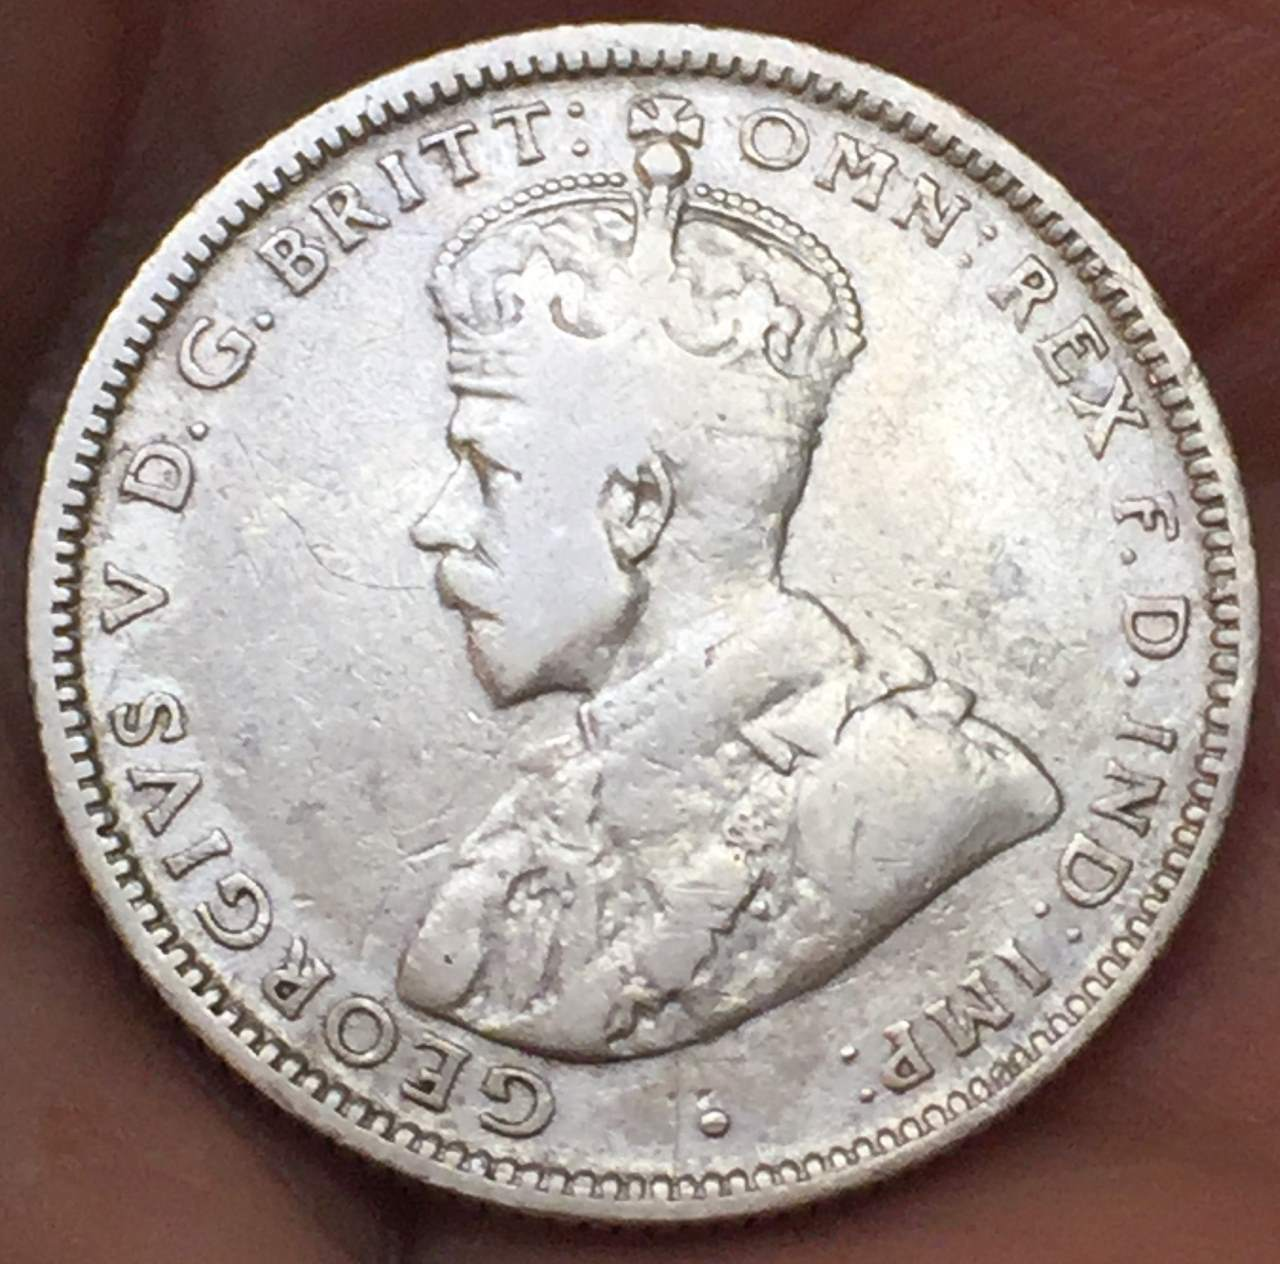 Primary image for 1925 Australia 1 Shilling George V Rare Silver Coin Very Nice!